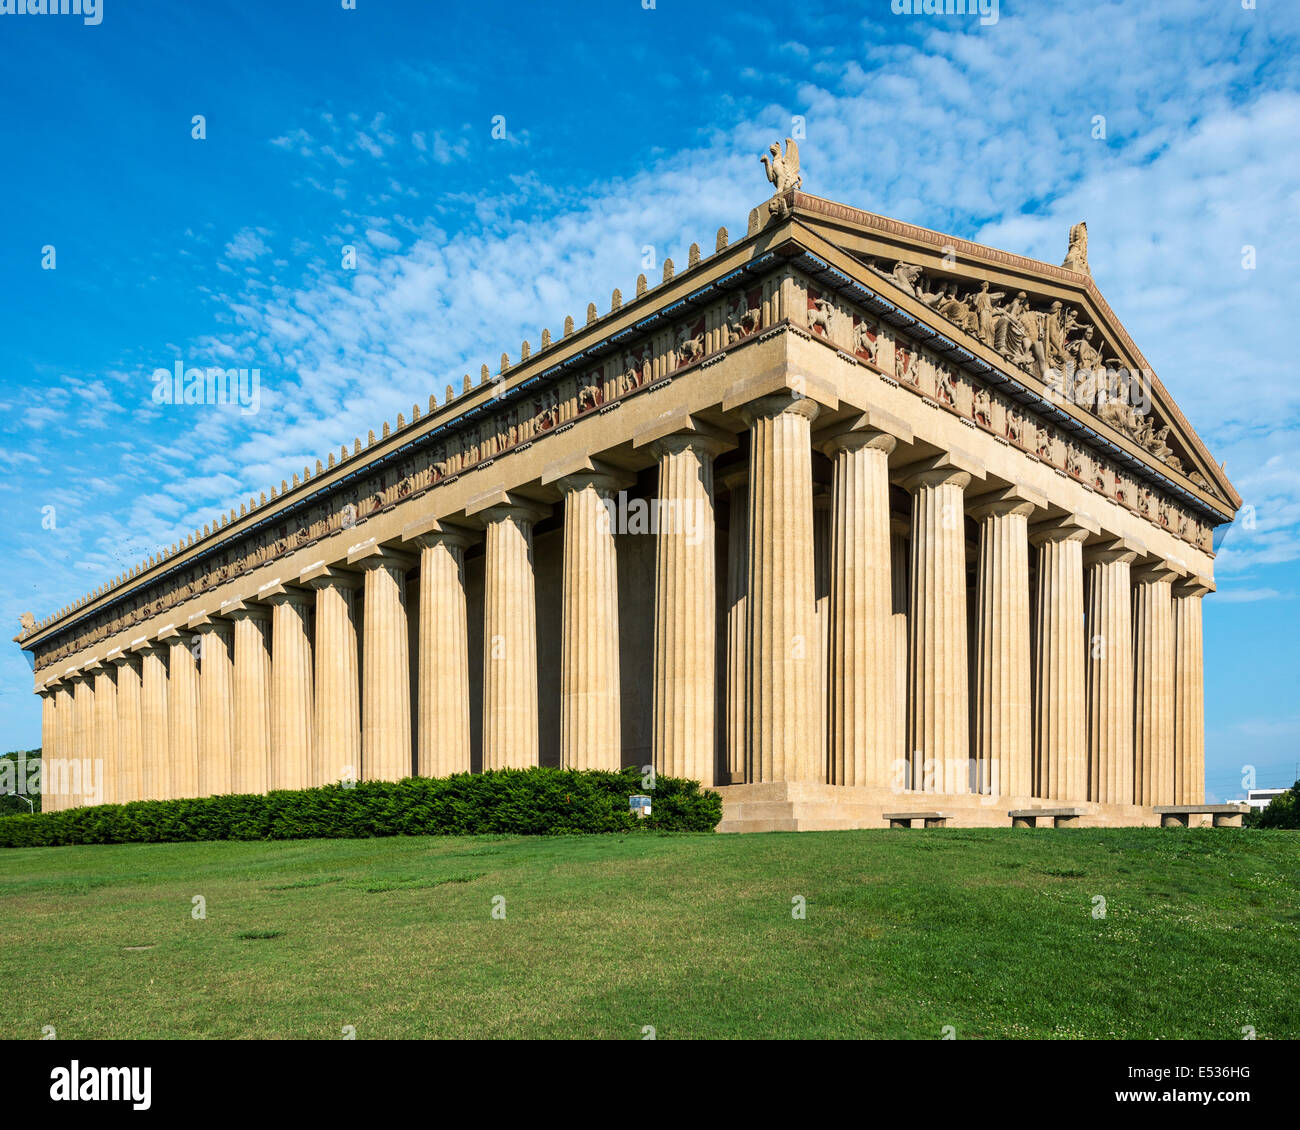 Parthenon Replica at Centennial Park in Nashville, Tennessee, USA. - Stock Image